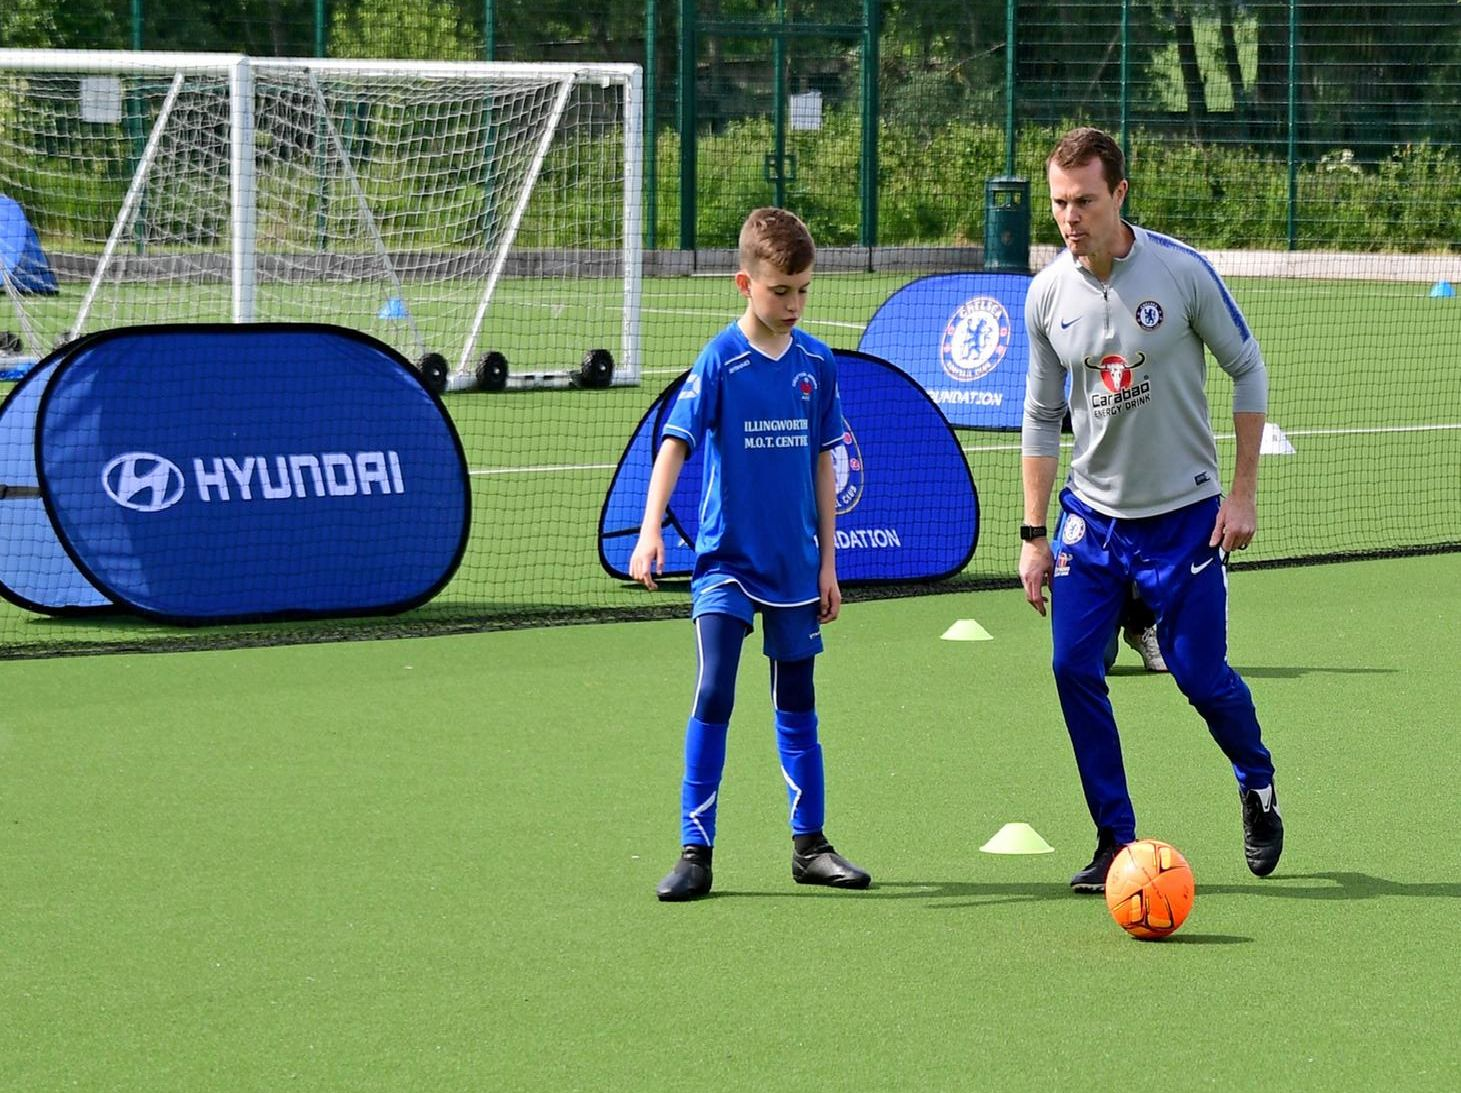 Crofton Juniors take part in the special training session, organised by Hyundai FC.